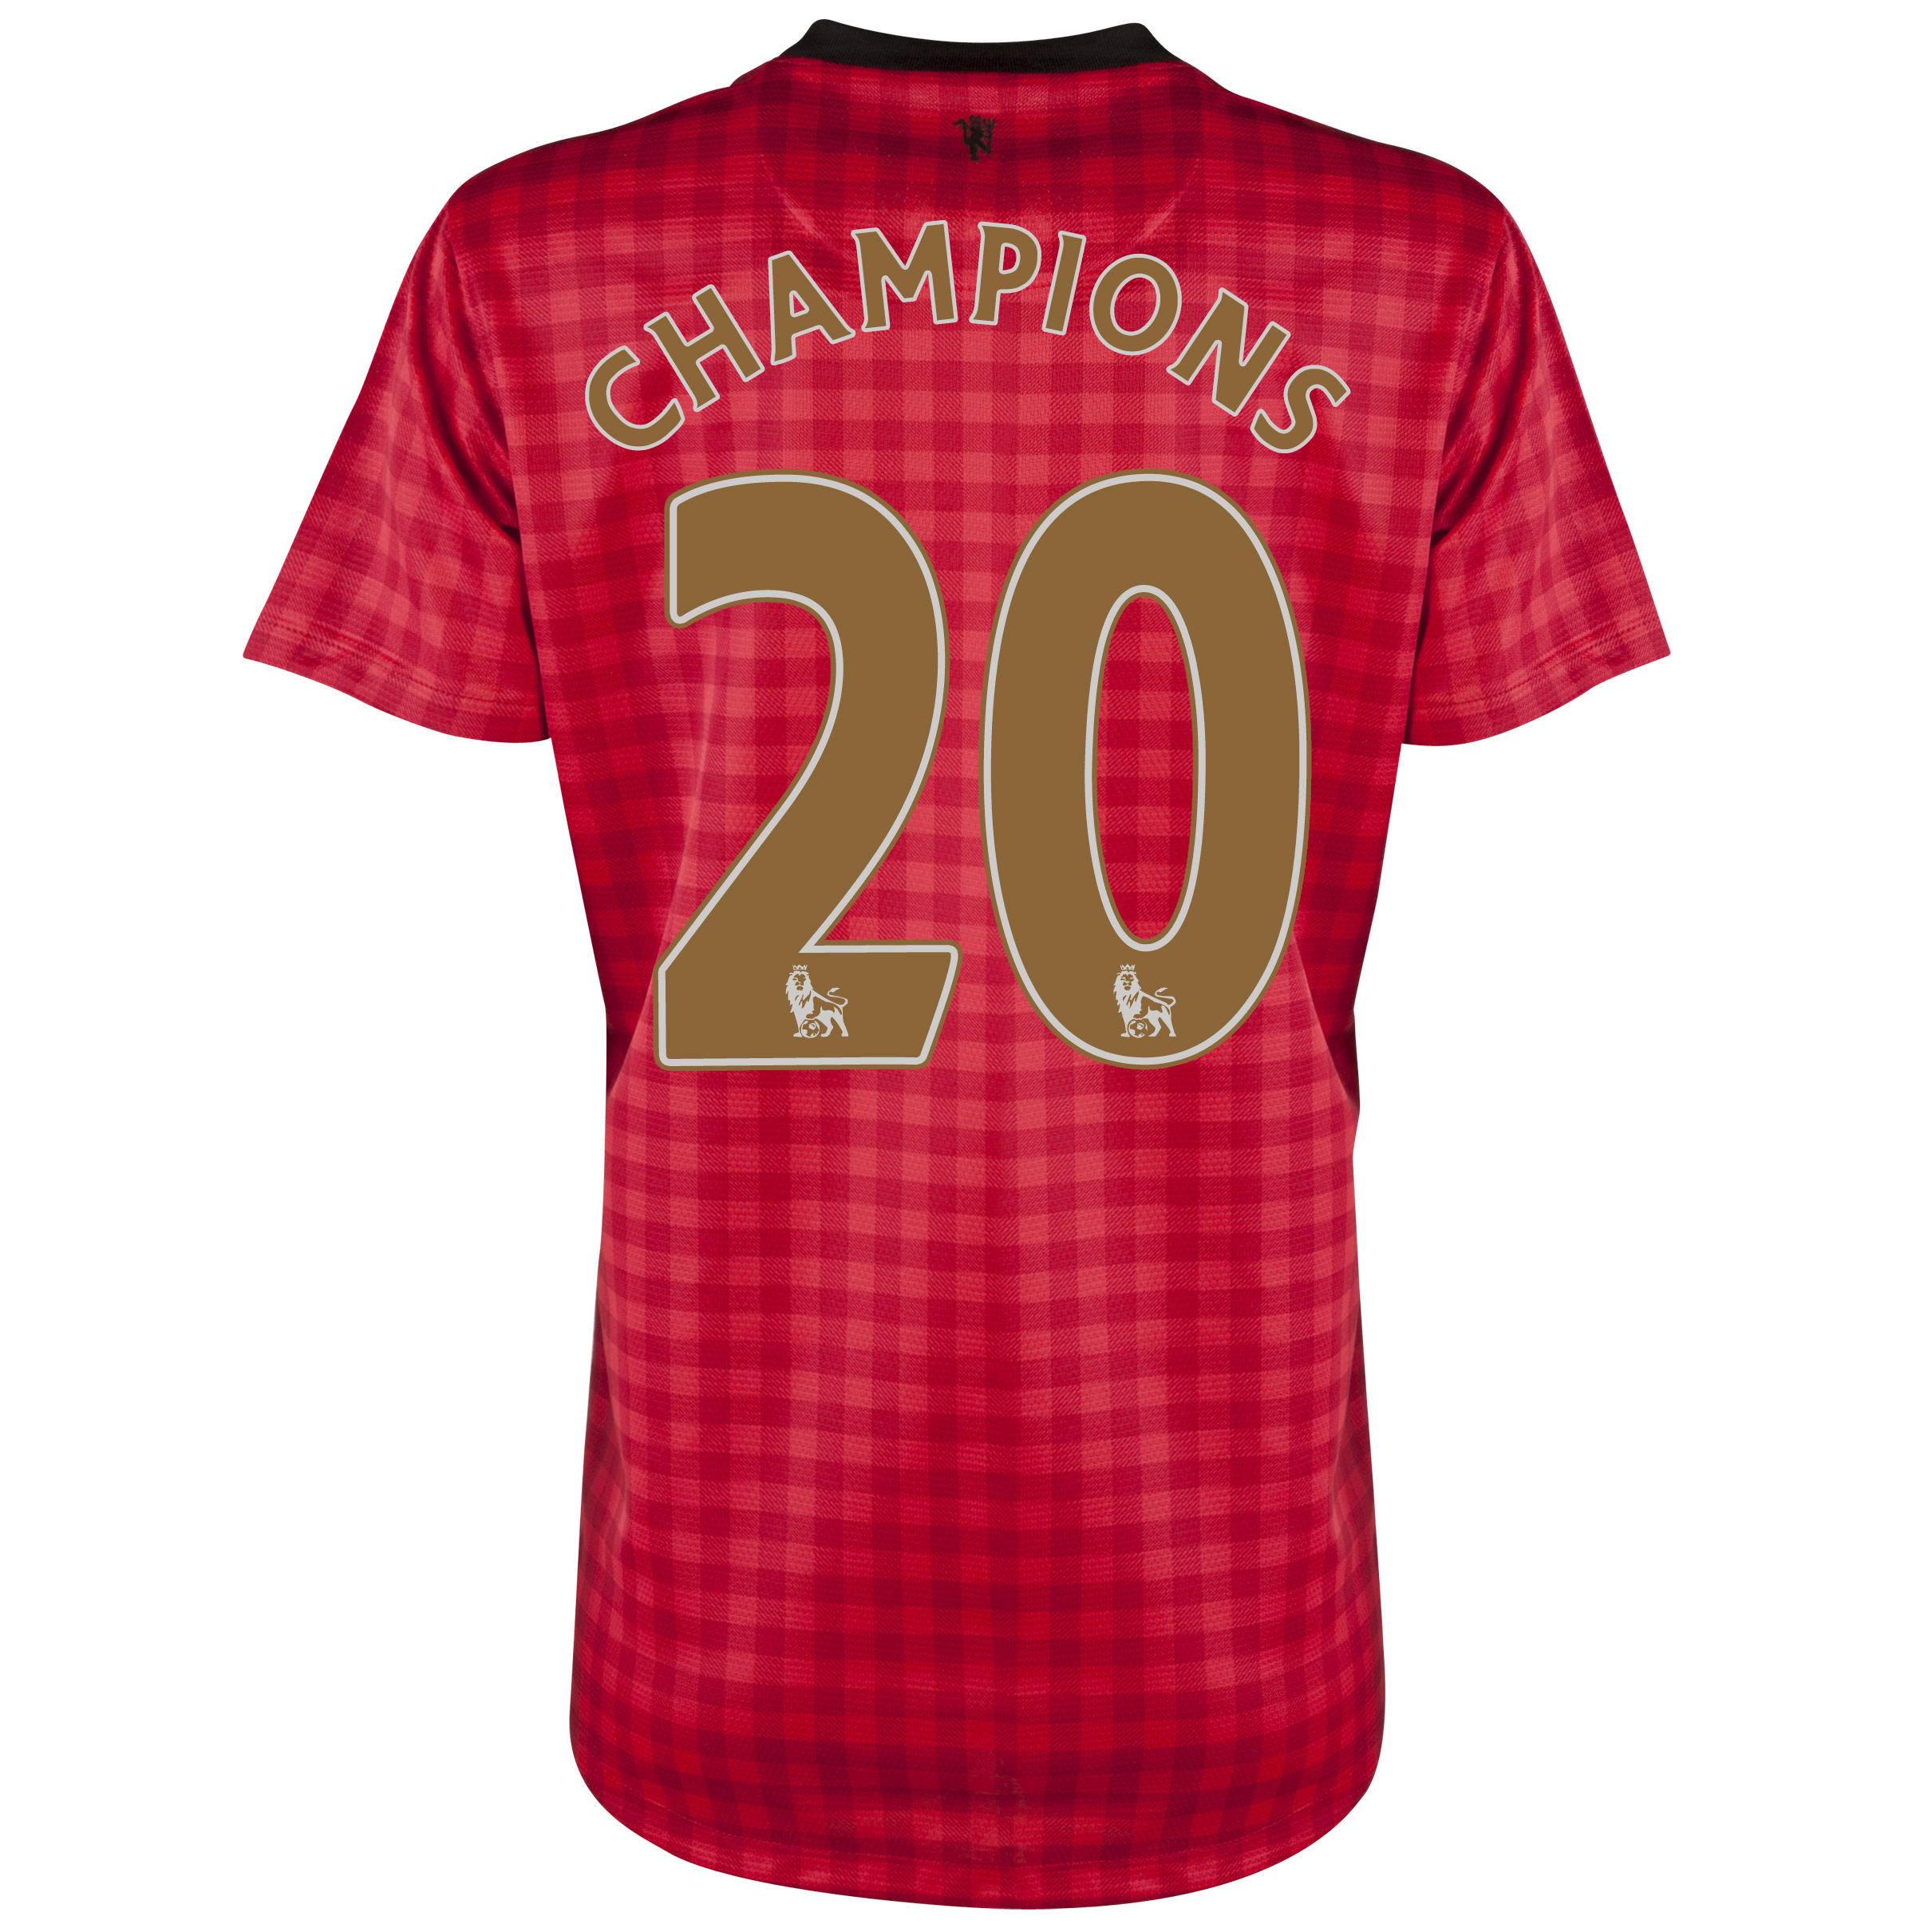 Manchester United Home Shirt 2012/13 - Womens with Champions 20 printing